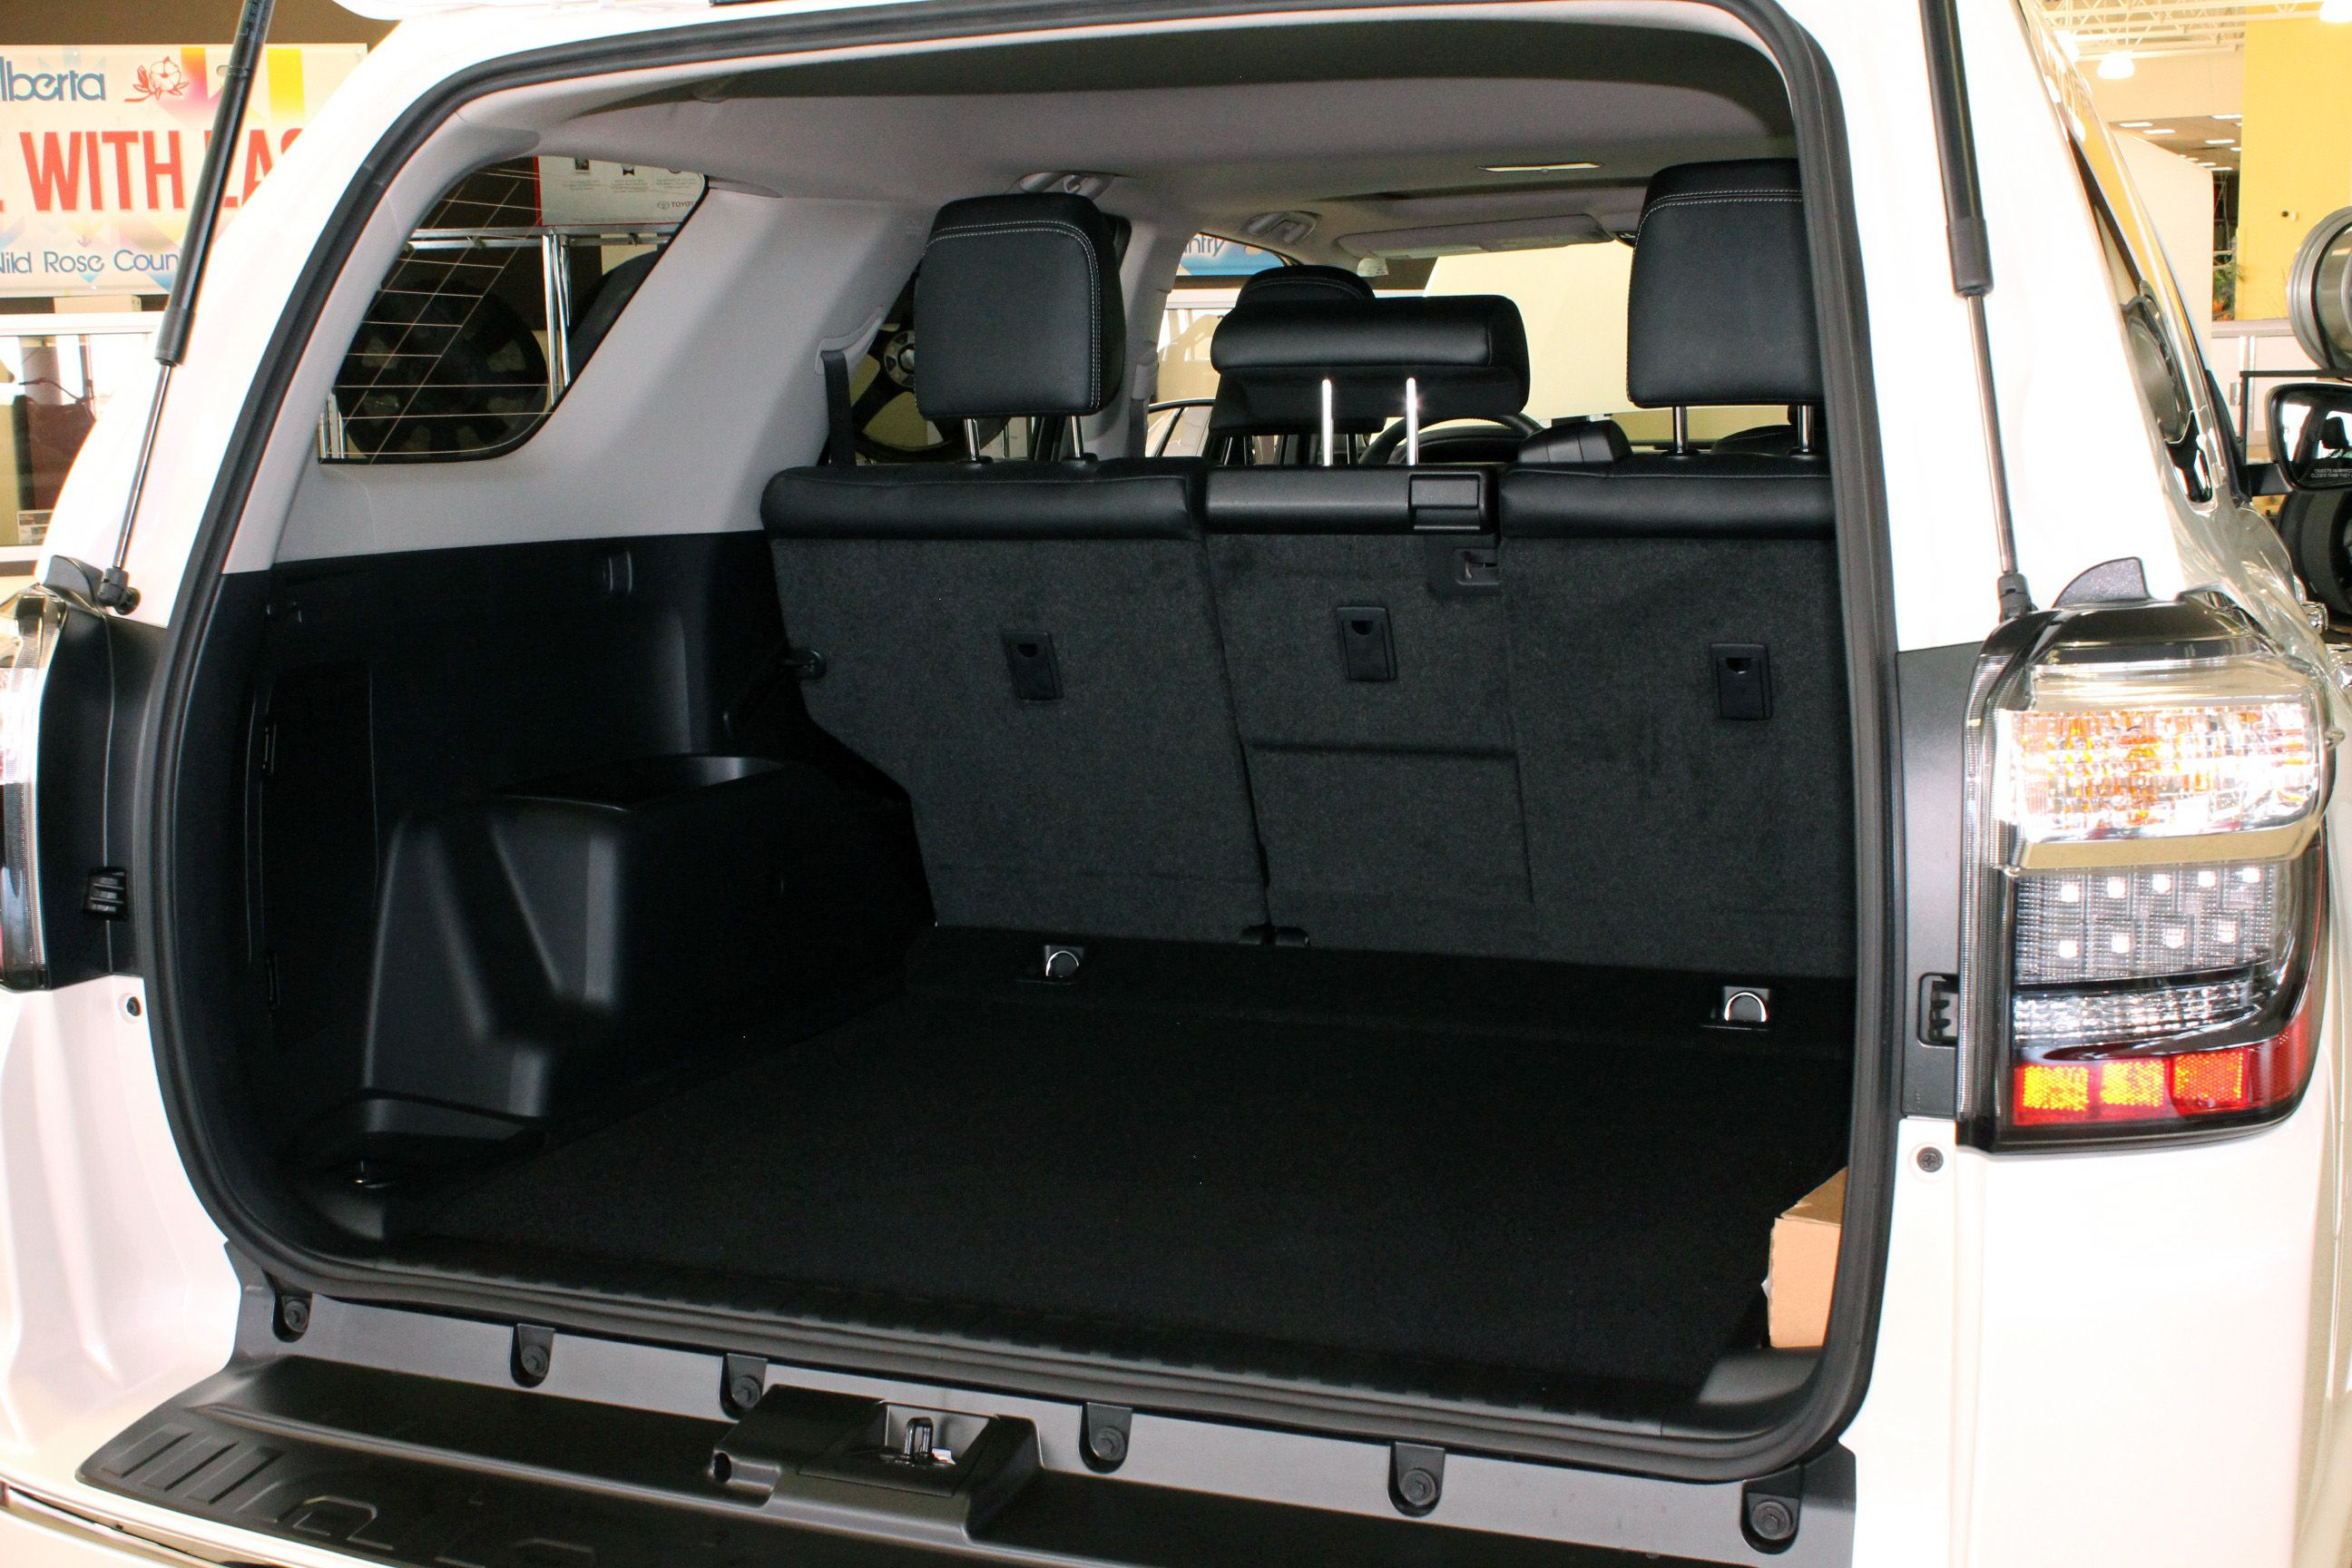 toyota 4runner forum largest 4runner forum who in here. Black Bedroom Furniture Sets. Home Design Ideas